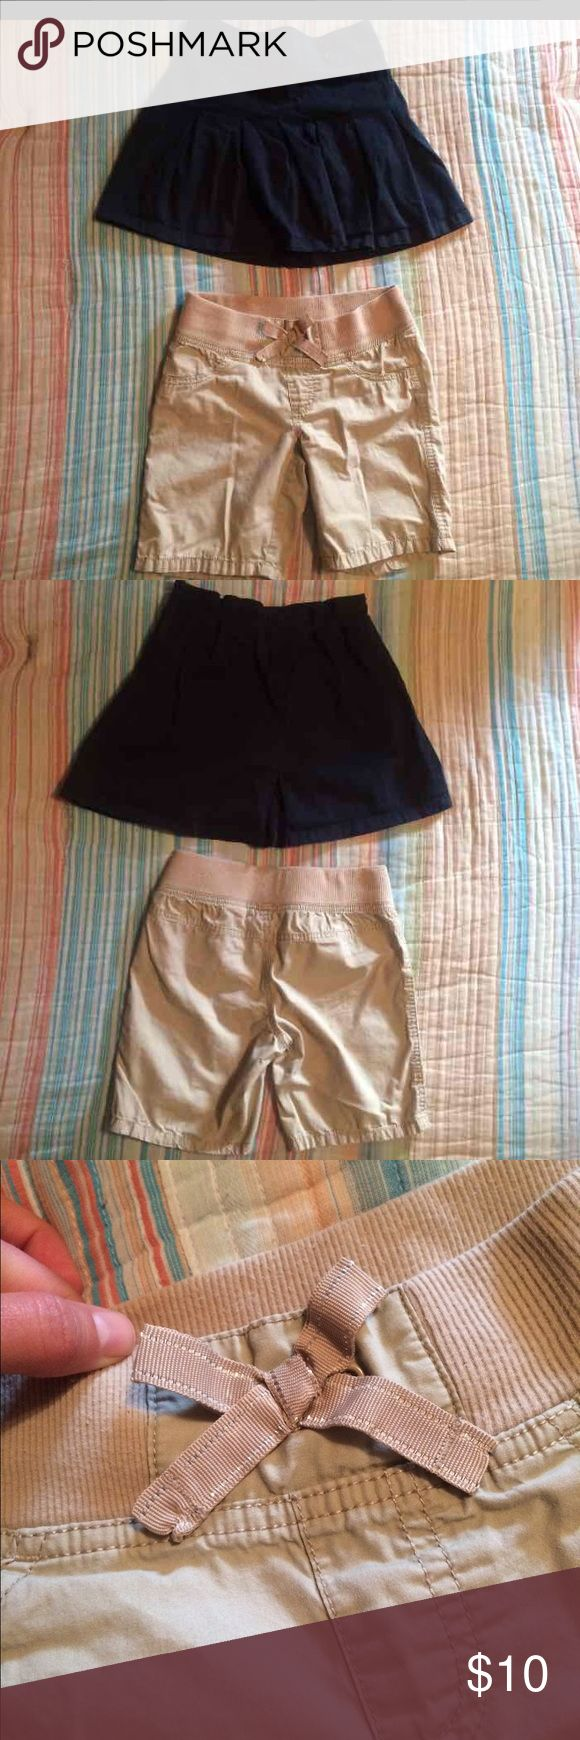 Girl school uniform Bundle- skirt & shorts, 7/8 Girls 2 piece bundle: Navy pleated uniform skirt with attached under-shorts, button waist detail and side zipper. (Size 8) Khaki elastic waist shorts with shimmery stitched bow and non-working pockets on front. (Size 7/8) Bottoms